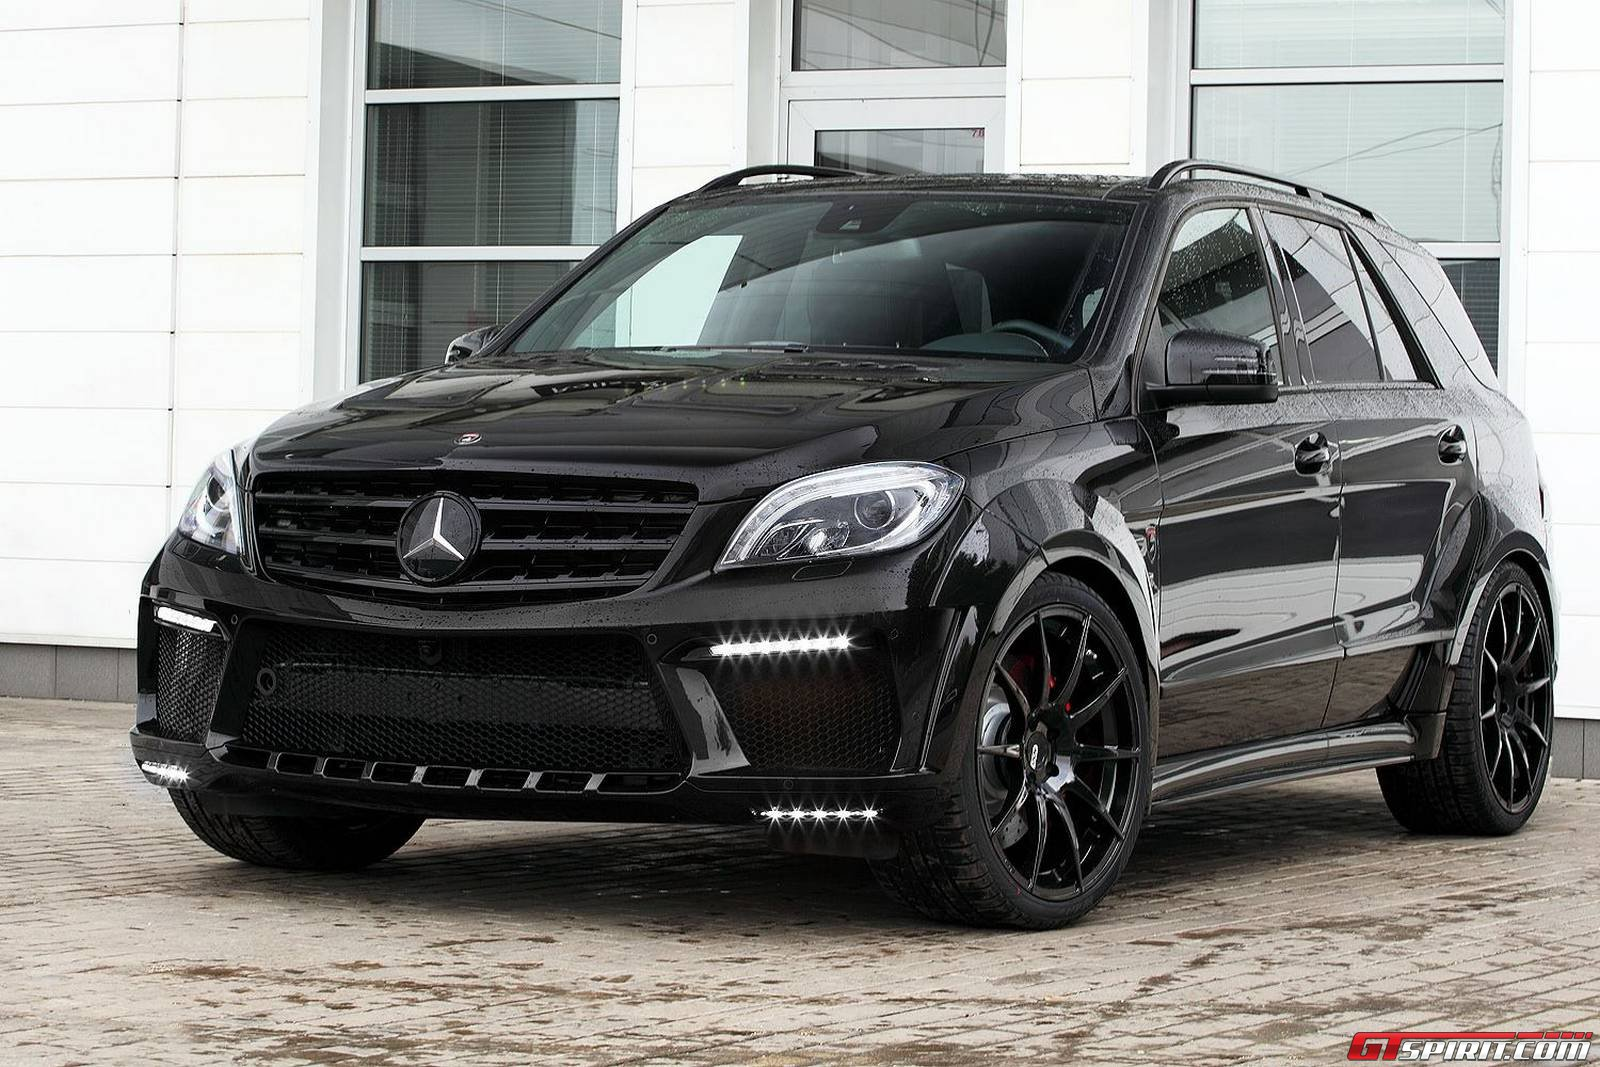 Ml 63 amg gallery for Mercedes benz amg rims for sale